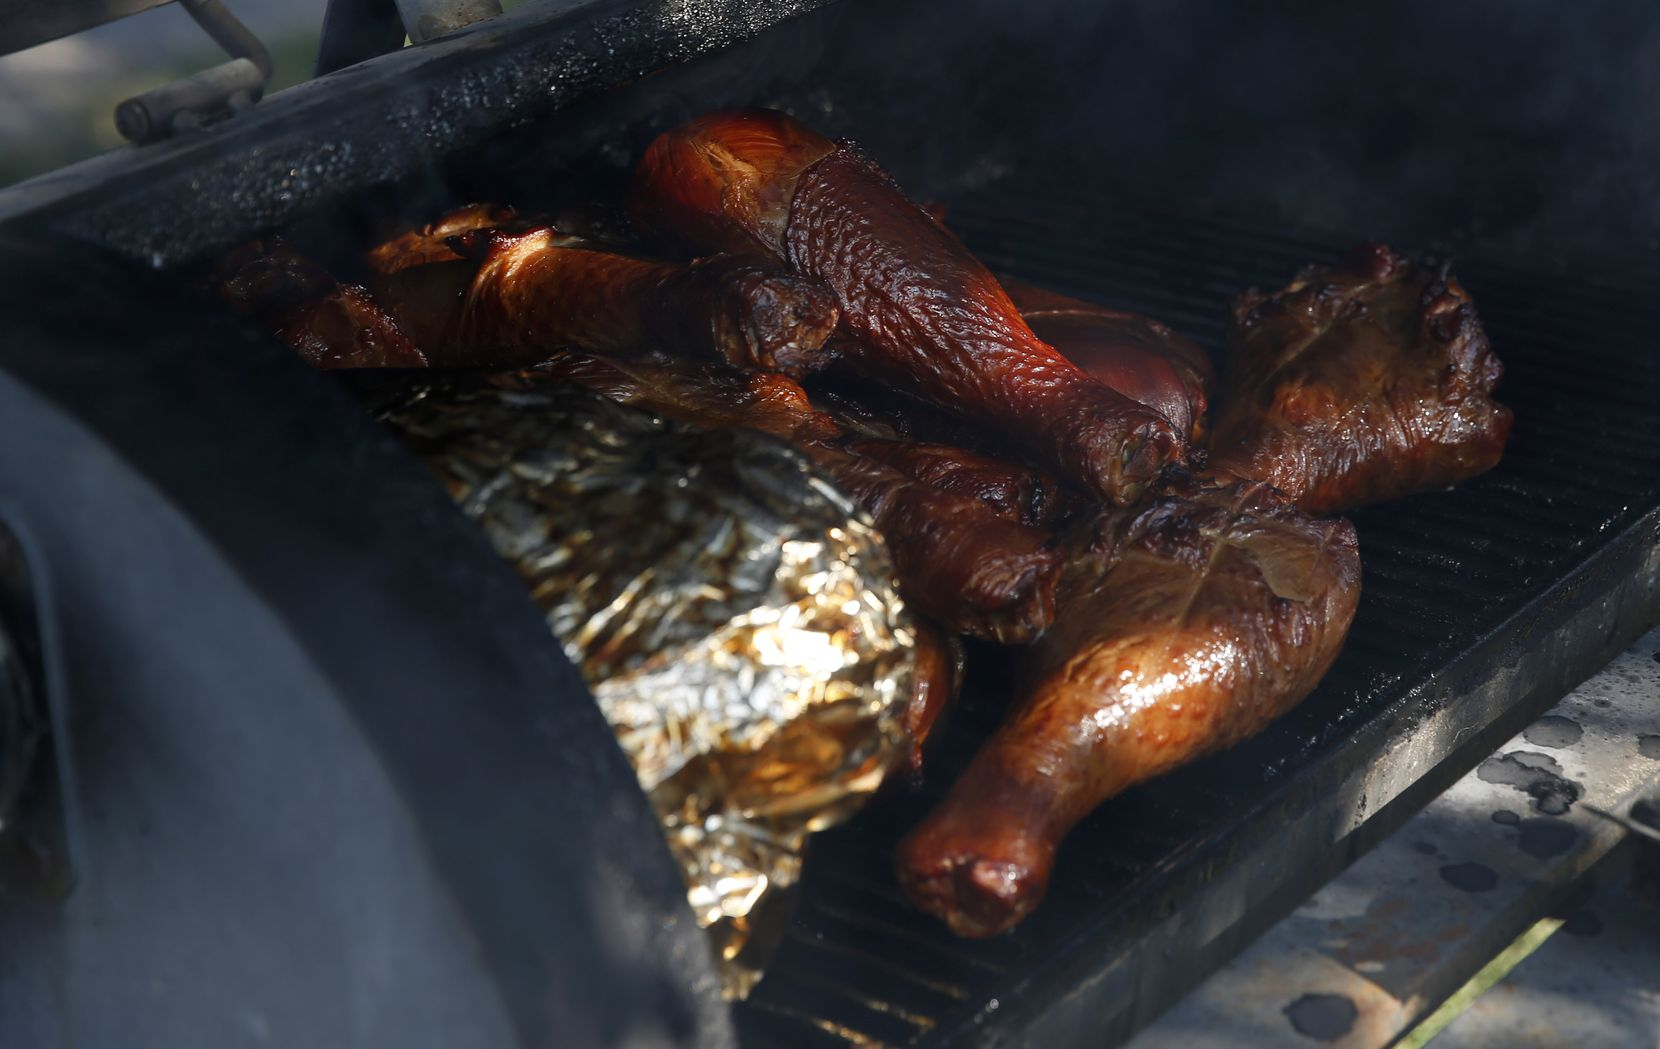 Wrapped brisket sits beside turkey legs on the barbecue pit tended by Stacey Walker on Saturday, Oct. 10, 2020. Although the grill masters of this group are diehard fans of their respective teams, the UT-OU game has turned them into unlikely friends, and over the years, family. (Vernon Bryant/The Dallas Morning News)